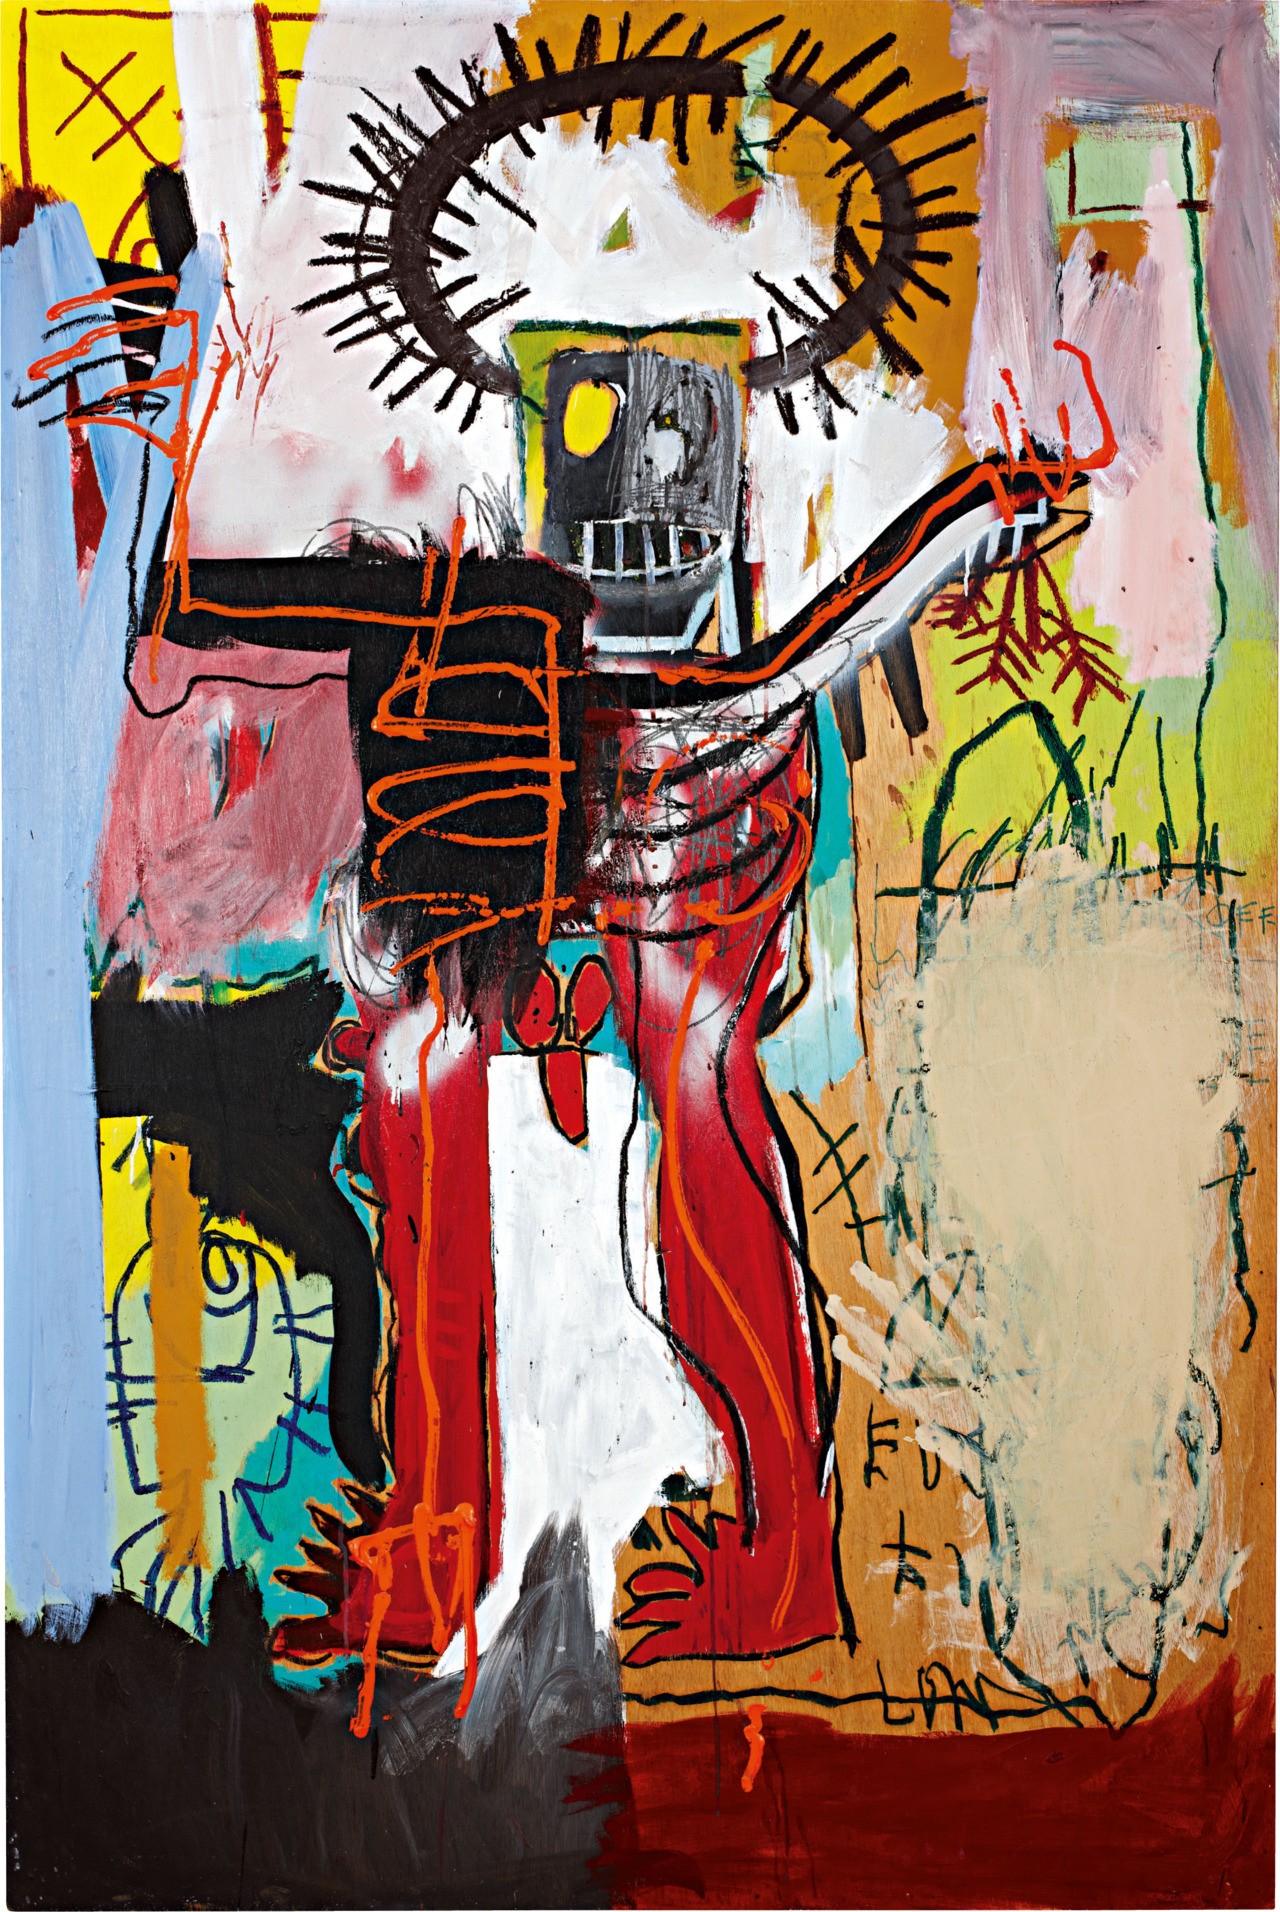 "JEAN-MICHEL BASQUIAT | Untitled, 1981 | acrylic, oilstick, and spray paint on wood  Sold for $16,322,500 at the Contemporary Art Evening Sale, 10 May 2012, New York, achieving an auction record for the artist. [Video]  Basquiat's great strength is his ability to merge his absorption of imagery from the streets, the newspapers, and TV with the spiritualism of his Haitian heritage, injecting both into a marvelously intuitive understanding of the language of modern painting. (Jeffrey Deitch, ""Jean-Michel Basquiat: Annina Nosei,"" Flash Art, 16, May 1982, p. 50).  It would be insufficient to discuss Jean-Michel Basquiat's radical art without touching upon the biographical and ideological forces that gave rise to his work. As a product of two national identities, Haitian and Puerto Rican, Basquiat was instilled with the nuances of cultural differentiation early on in his life. And, living a biracial childhood in Brooklyn, he was exposed to both the difficulty of black struggle and the wealth of his diverse heritage. He harnessed these differences to a brilliant degree, establishing his fluency in French, English, and Spanish by age eleven. In addition, his fascination with knowledge created lasting obsessions, namely with human anatomy and skeletal structure inspired by a copy of Grey's Anatomy. Human anatomy would later become one of the trademark visual tropes in his oeuvre. Yet, perhaps most impressively, he employed his intellect toward self-improvement: his skills in drawing and painting were entirely self-taught, a remarkable marriage of observational discipline and extraordinary creativity.  Basquiat, at the youthful age of twenty-one, had already developed an utterly mature style, filled with a richness of history and biographical experience. Untitled, 1981 demonstrates both racial conflict and artistic virtuosity in decidedly religious tones, indicative of the lasting imprint of Basquiat's Catholic upbringing. The piece itself, in terms of medium, is typical of Basquiat's early career, where his unorthodox choices of materials are most heavily distributed. He employs a combination of acrylic, his most conventional medium, with the choice of paintstick, utilized for the sake of its fluidity in drawing. However, Basquiat's street-inspired practices make themselves evident with the use of spray paint, which figures prominently in Untitled, 1981. Finally, all of his methods of technique lie firmly on a board of wood, which bears the immense cultural significance of Basquiat's picture with sturdy resolve.  By actually including the human figure in his work (as opposed to American Abstract Expressionists), Basquiat subordinates the notion of abstraction to the expressive opportunities inherent in representation: ""His works appear to break down the dichotomy between the external and the internal, intuiting and revealing the innermost aspects of psychic life."" (F. Hoffman, ""The Defining Years: Notes on Five Key Works"", Basquiat, Edited by M. Mayer, New York, 2005, p. 131). Representation actually makes introspection a richer and more revelatory experience for Basquiat. It is true that the disintegration and reintegration of his figure may never be entirely complete, as we still observe rogue body parts in Untitled, 1981, namely a toe at the lower-left portion of the figure. However, we may presume that this allows Basquiat to take stock of himself metaphorically, discovering the depth of his fracture and incompleteness."